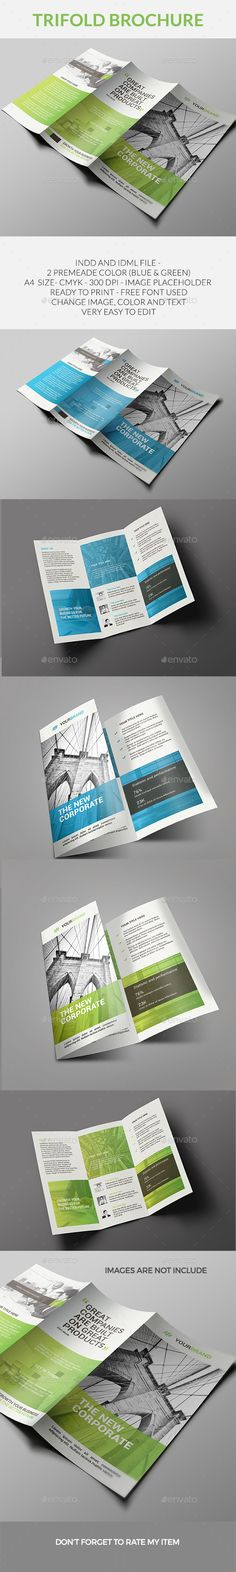 Corporate Trifold Brochure Template InDesign INDD #design Download: http://graphicriver.net/item/corporate-trifold-brochure-/13485554?ref=ksioks